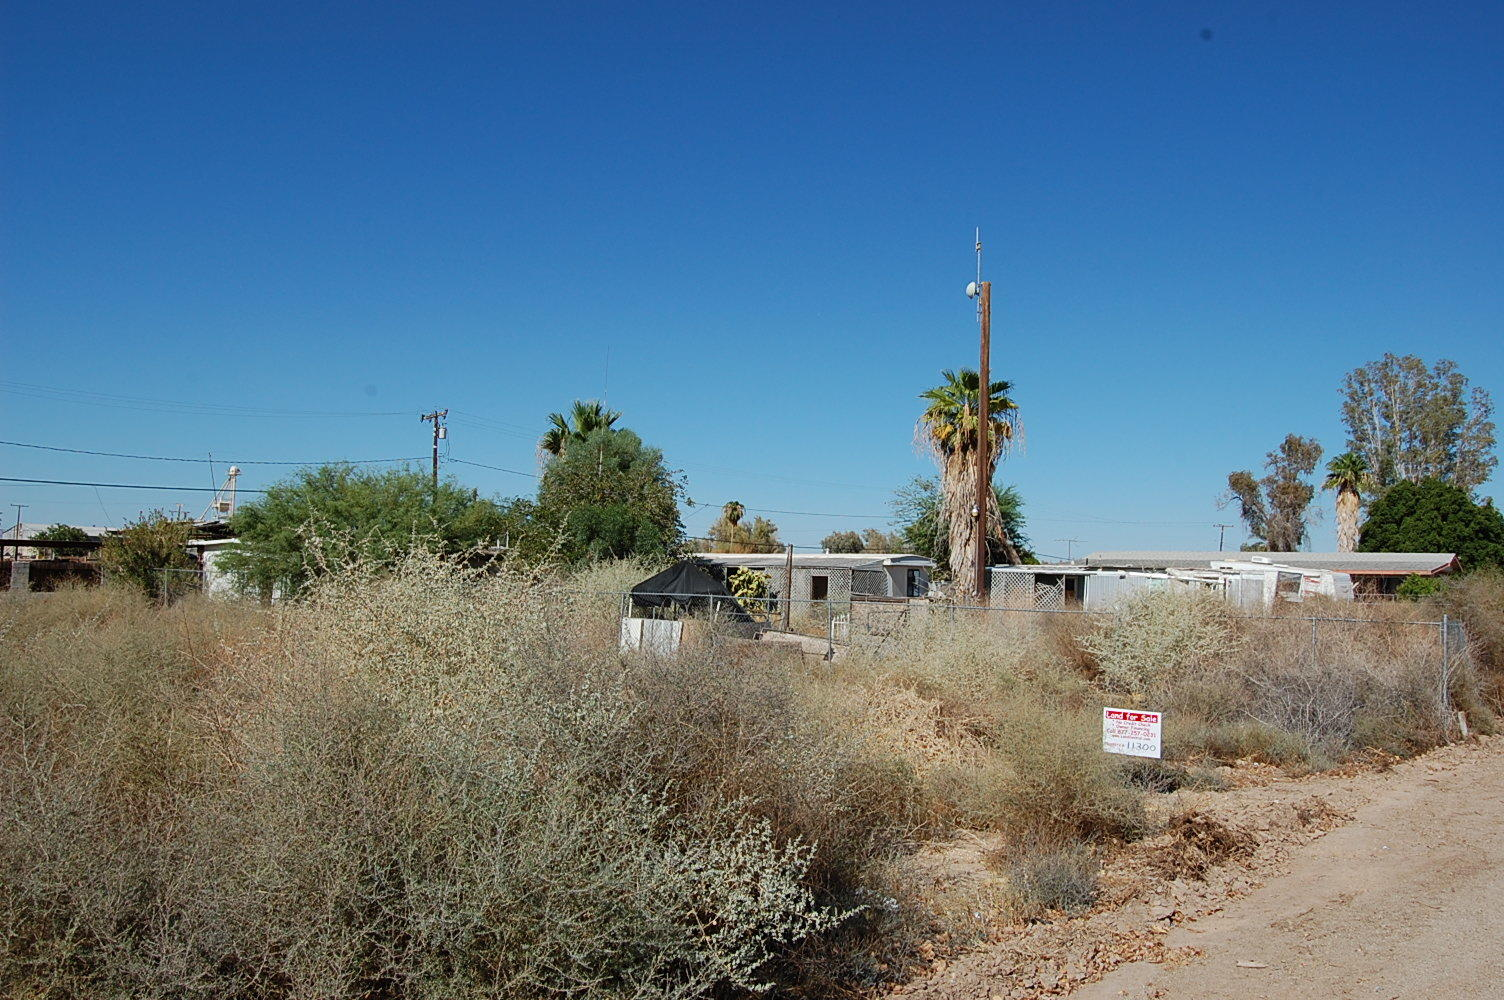 Lot in Small Agricultural Community - Image 4